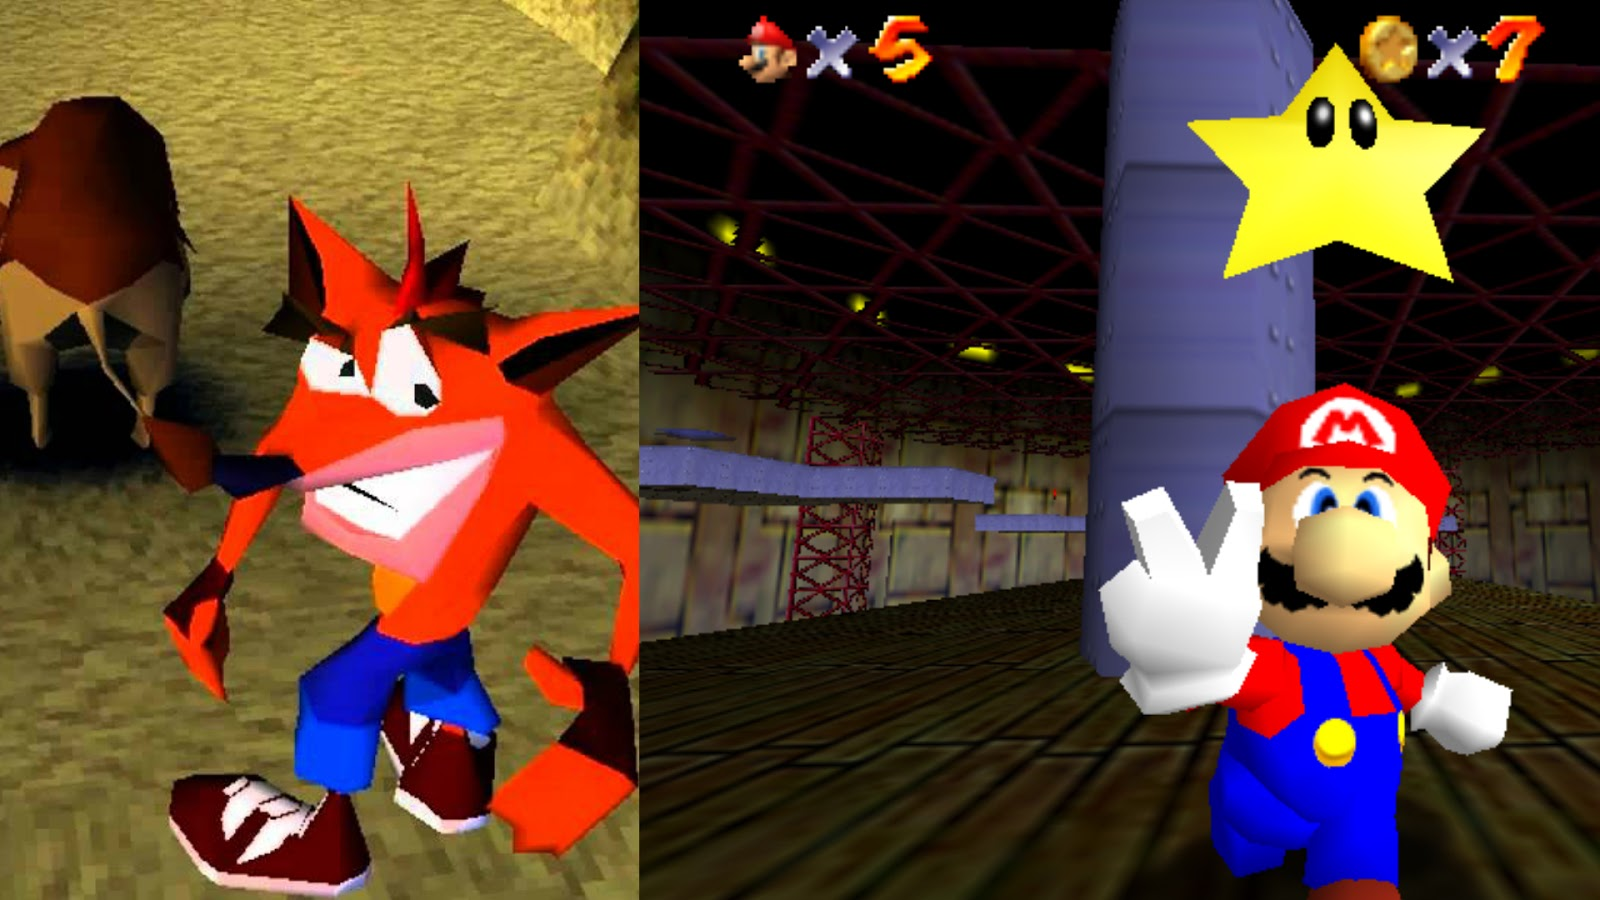 Nintendo N64 vs Sony PlayStation 4: 33 facts in comparison